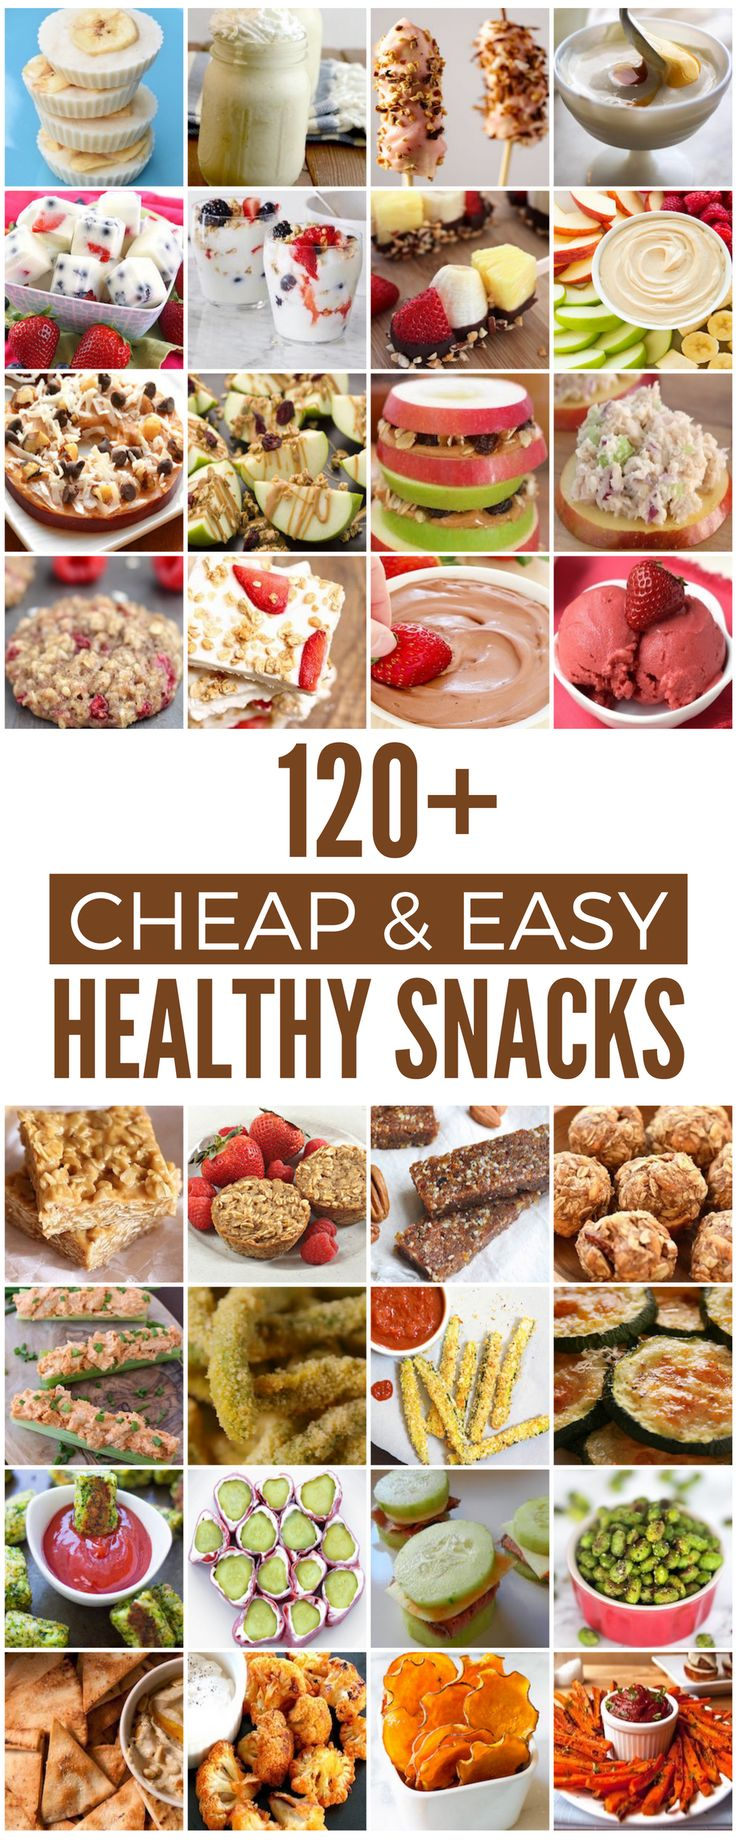 Shares Eat better for less with these cheap and healthy snack recipes. Whether you are looking for kid-friendly snacks, low calorie snacks or low carb snacks, there are healthy snacks for everyone her